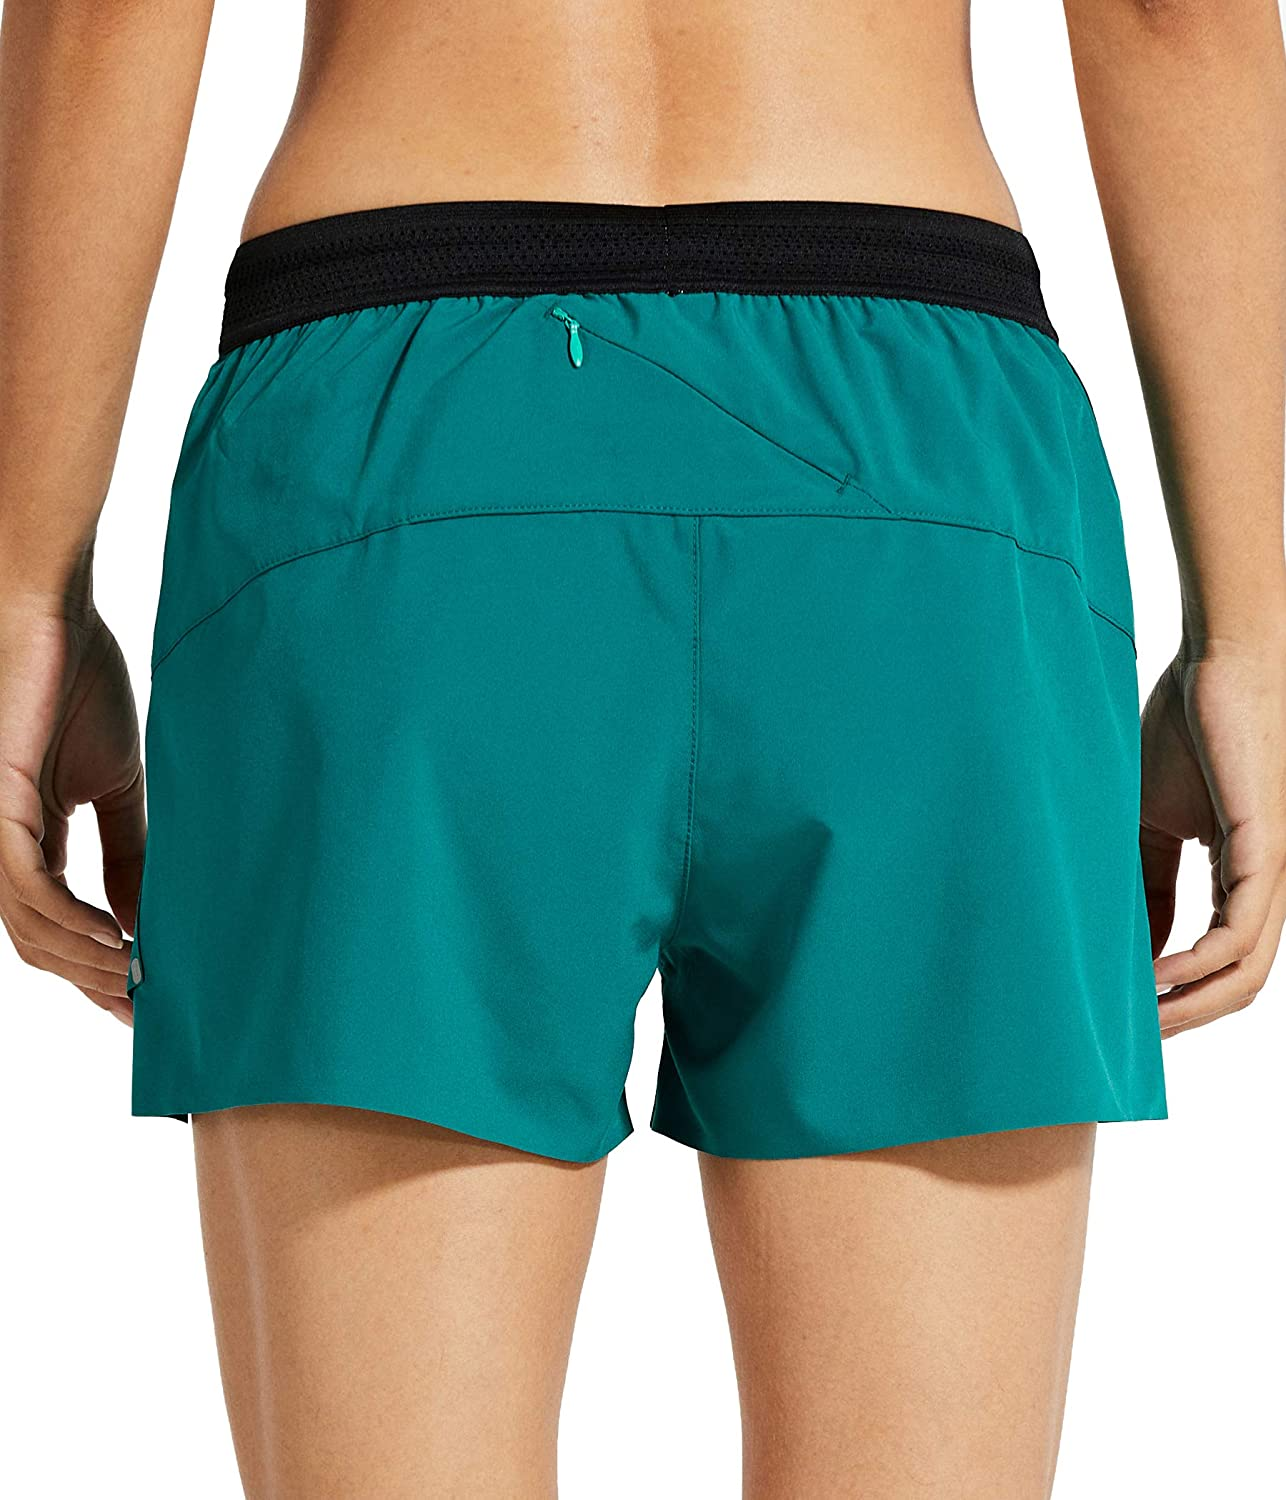 Libin Womens 3 Inch Running Shorts with Liner Quick Dry Athletic Workout Shorts Lounge Sport Gym Shorts Back Zip Pocket